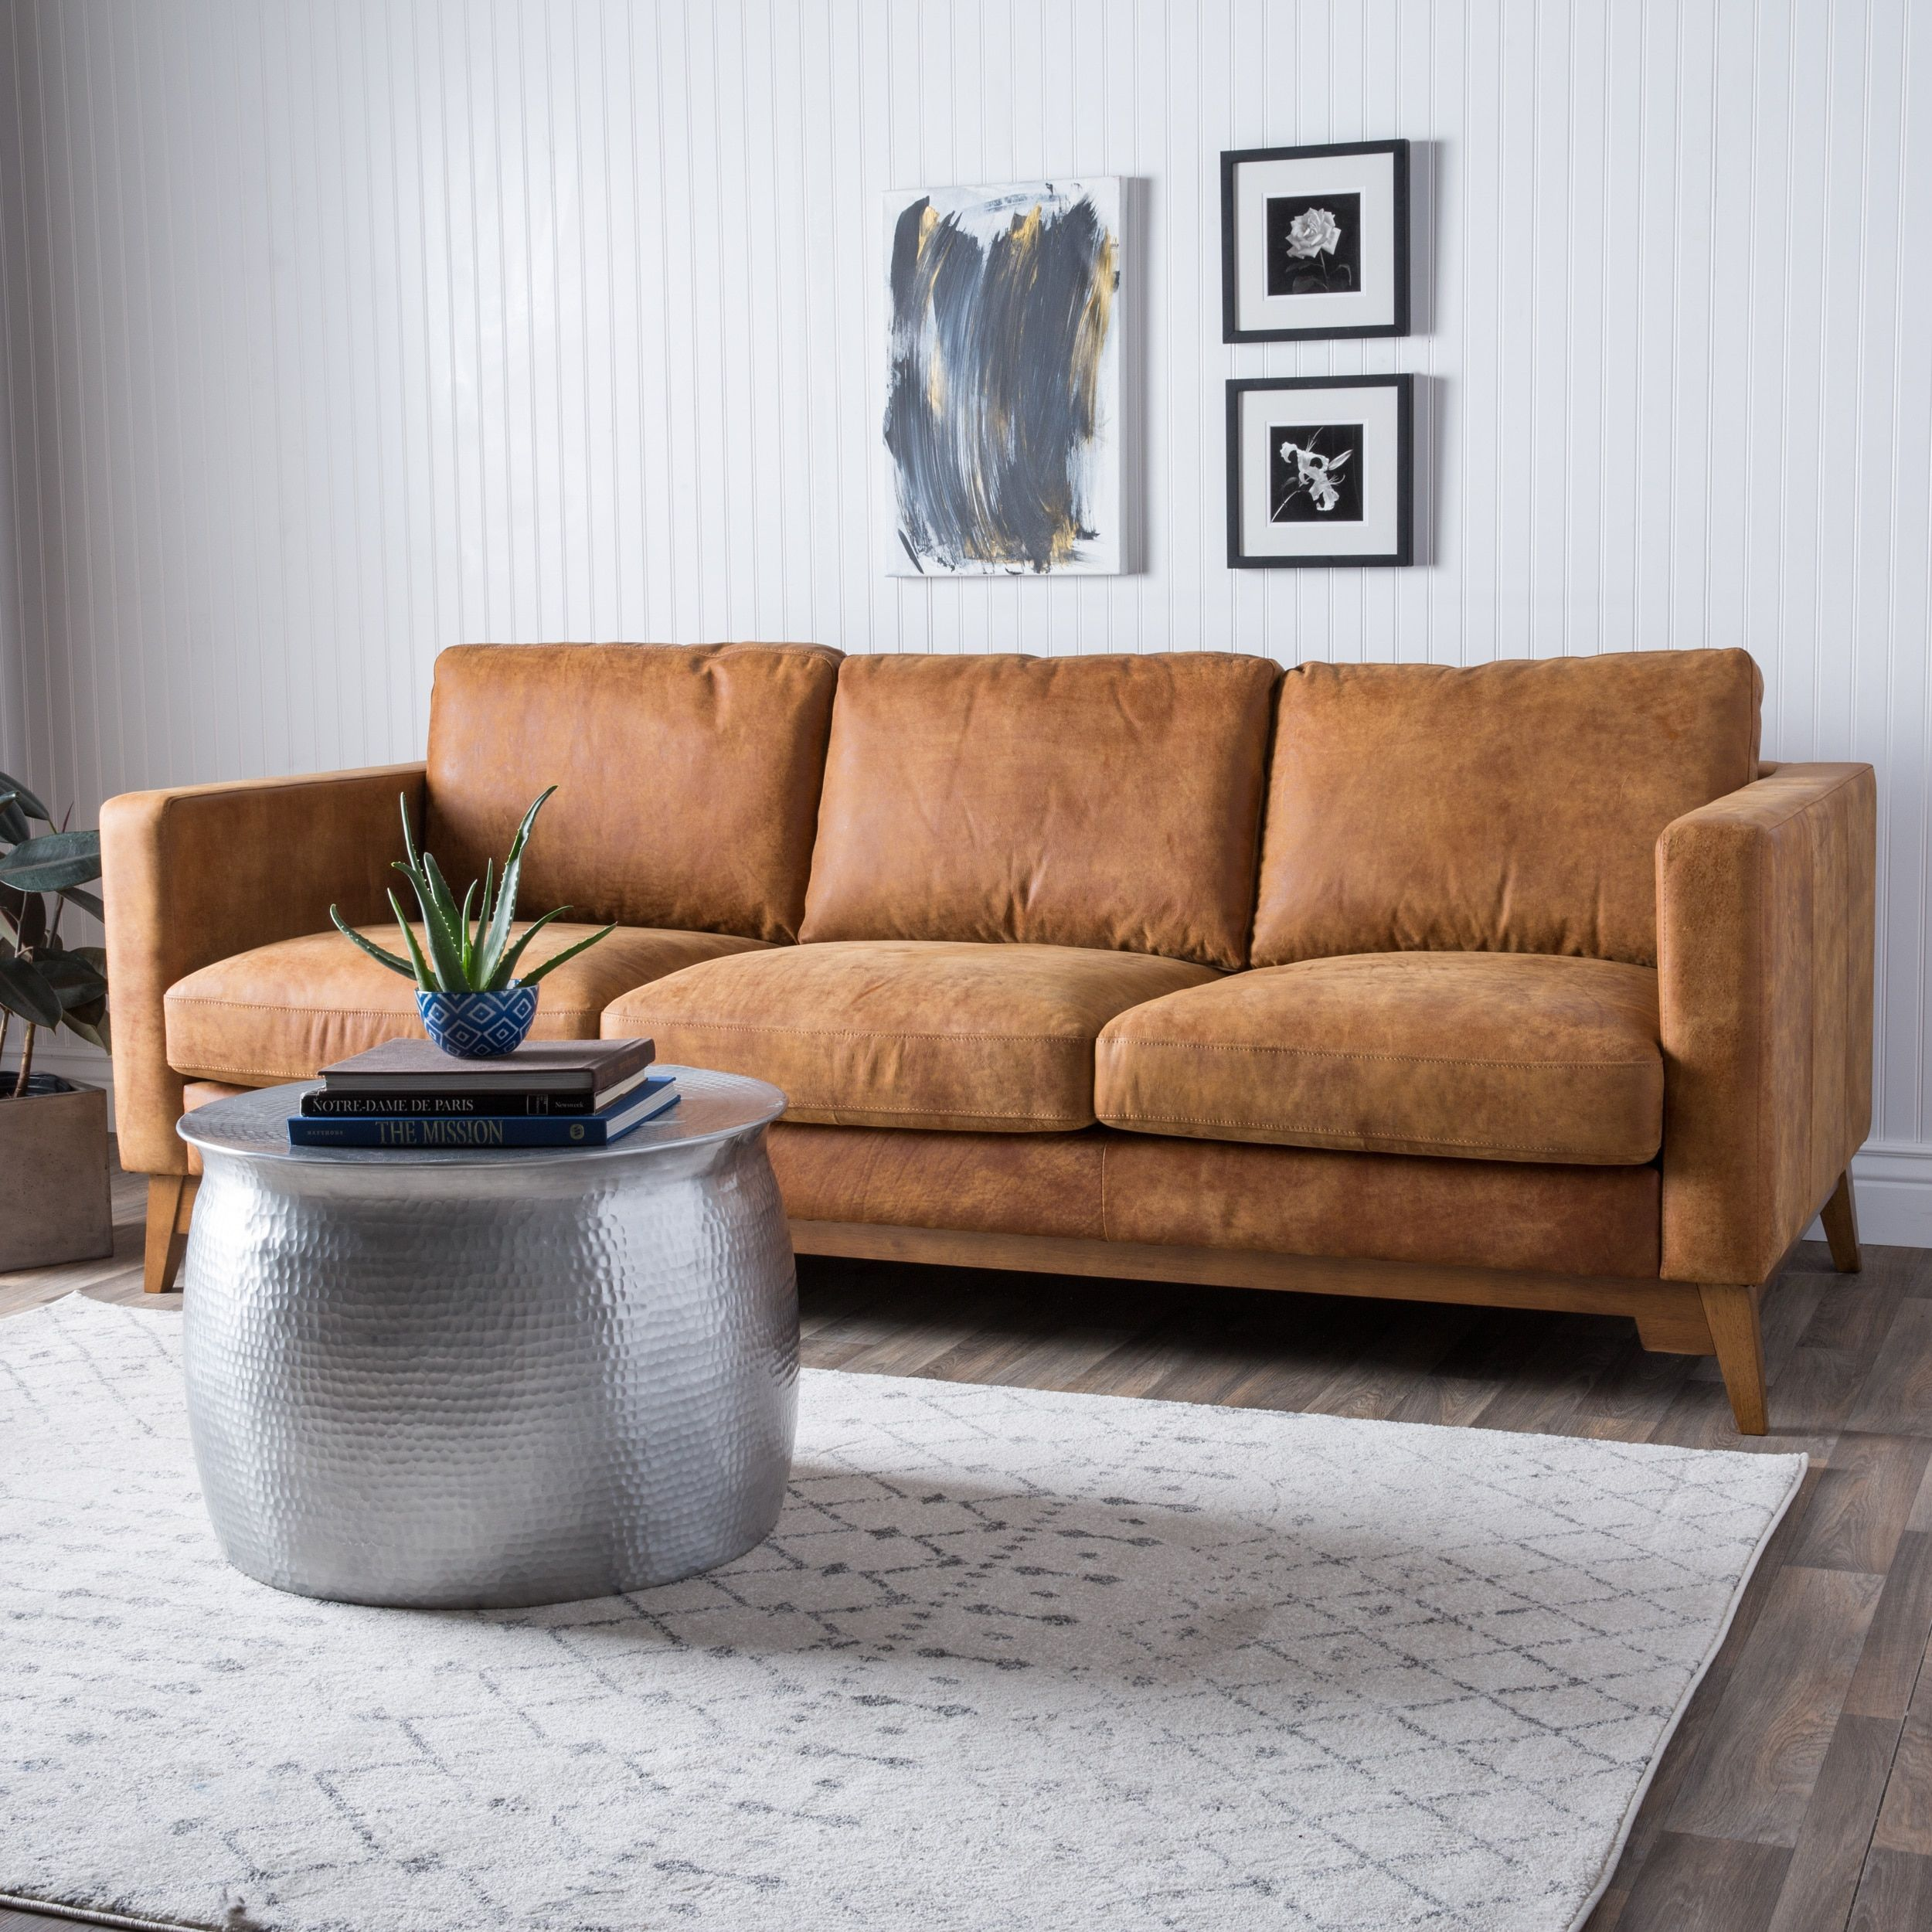 Filmore 89 Inch Tan Leather Sofa Ping The Best Deals On Sofas Loveseats